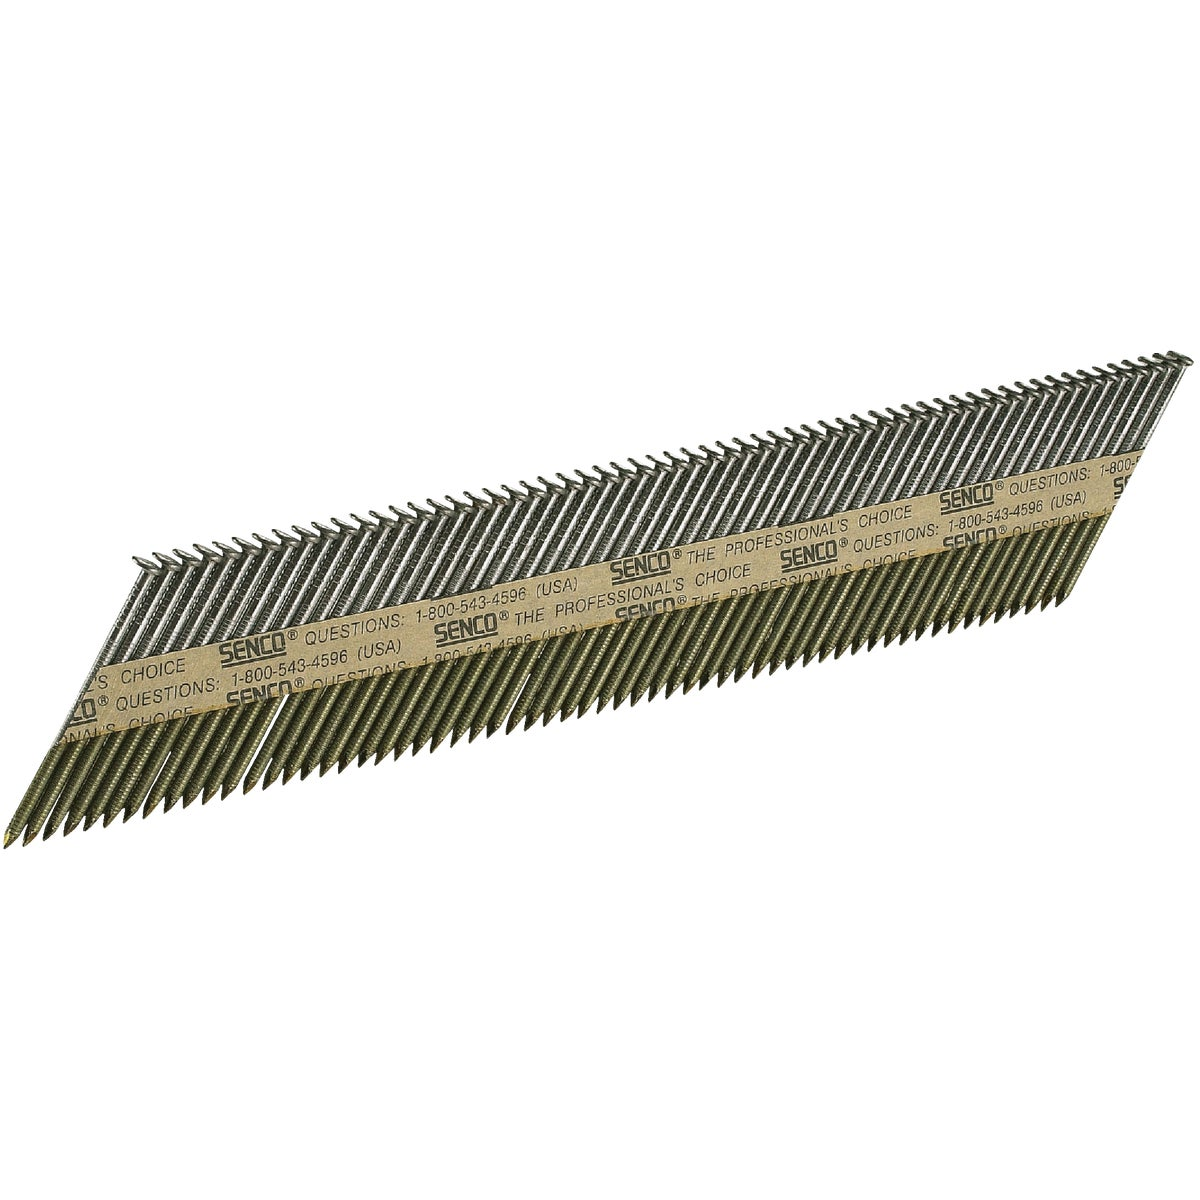 "3"" FRAMING NAIL - HE27ASBX by Senco Brands"